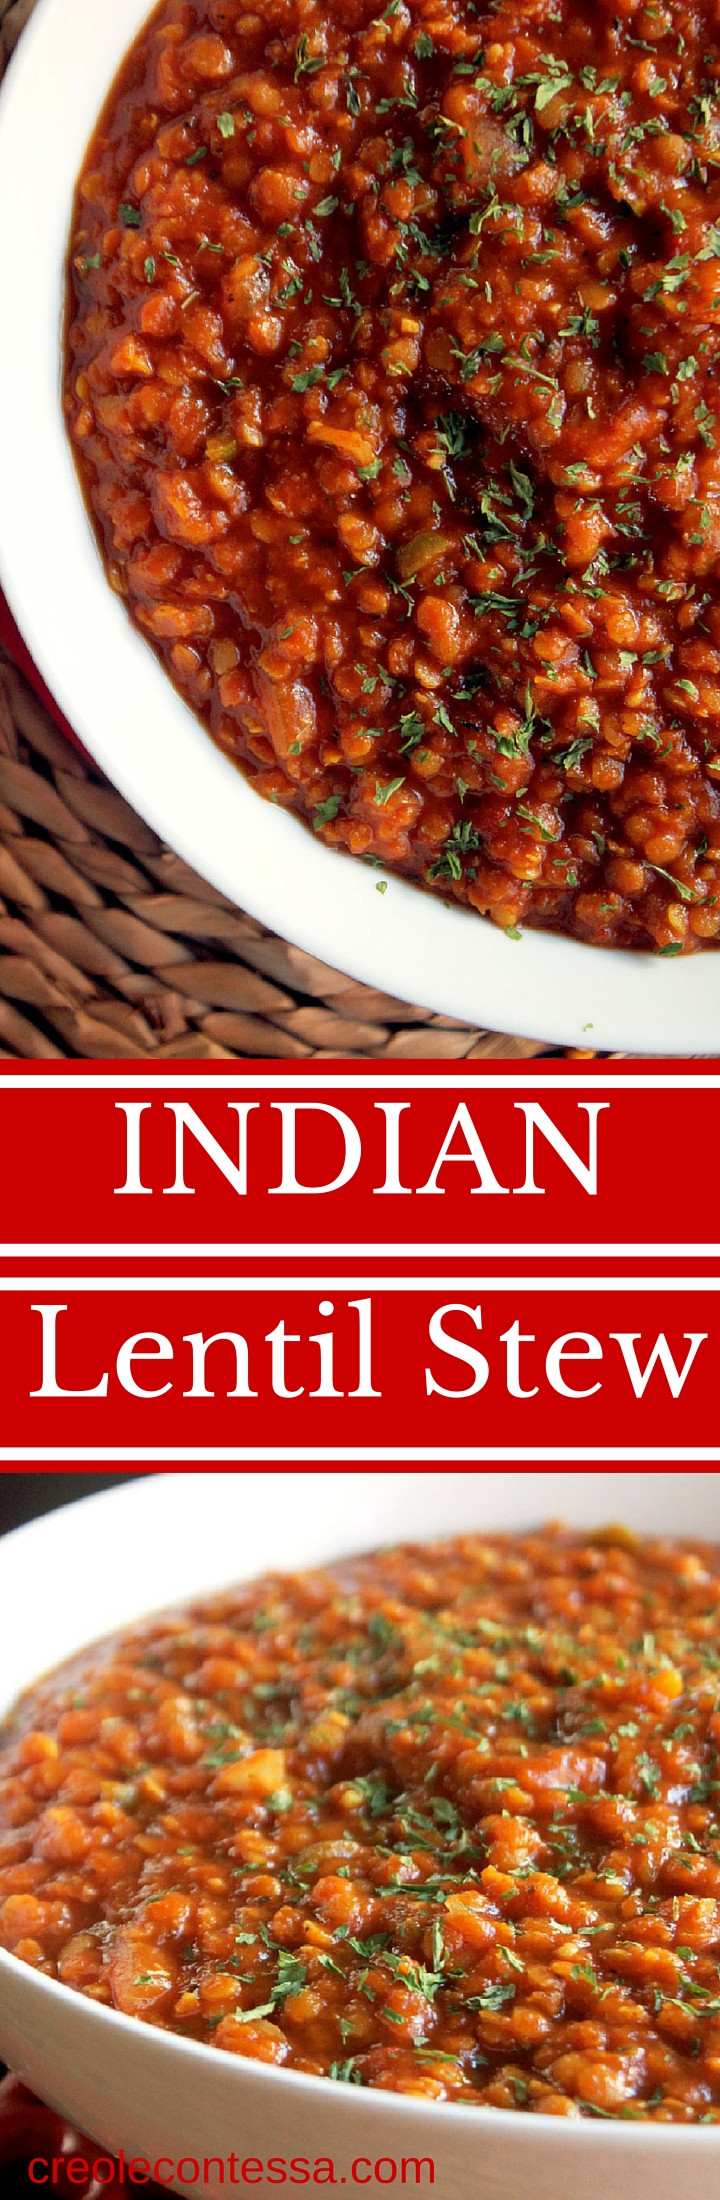 Slow Cooker Lentil Recipes  Slow Cooker Indian Lentil Stew Creole Contessa